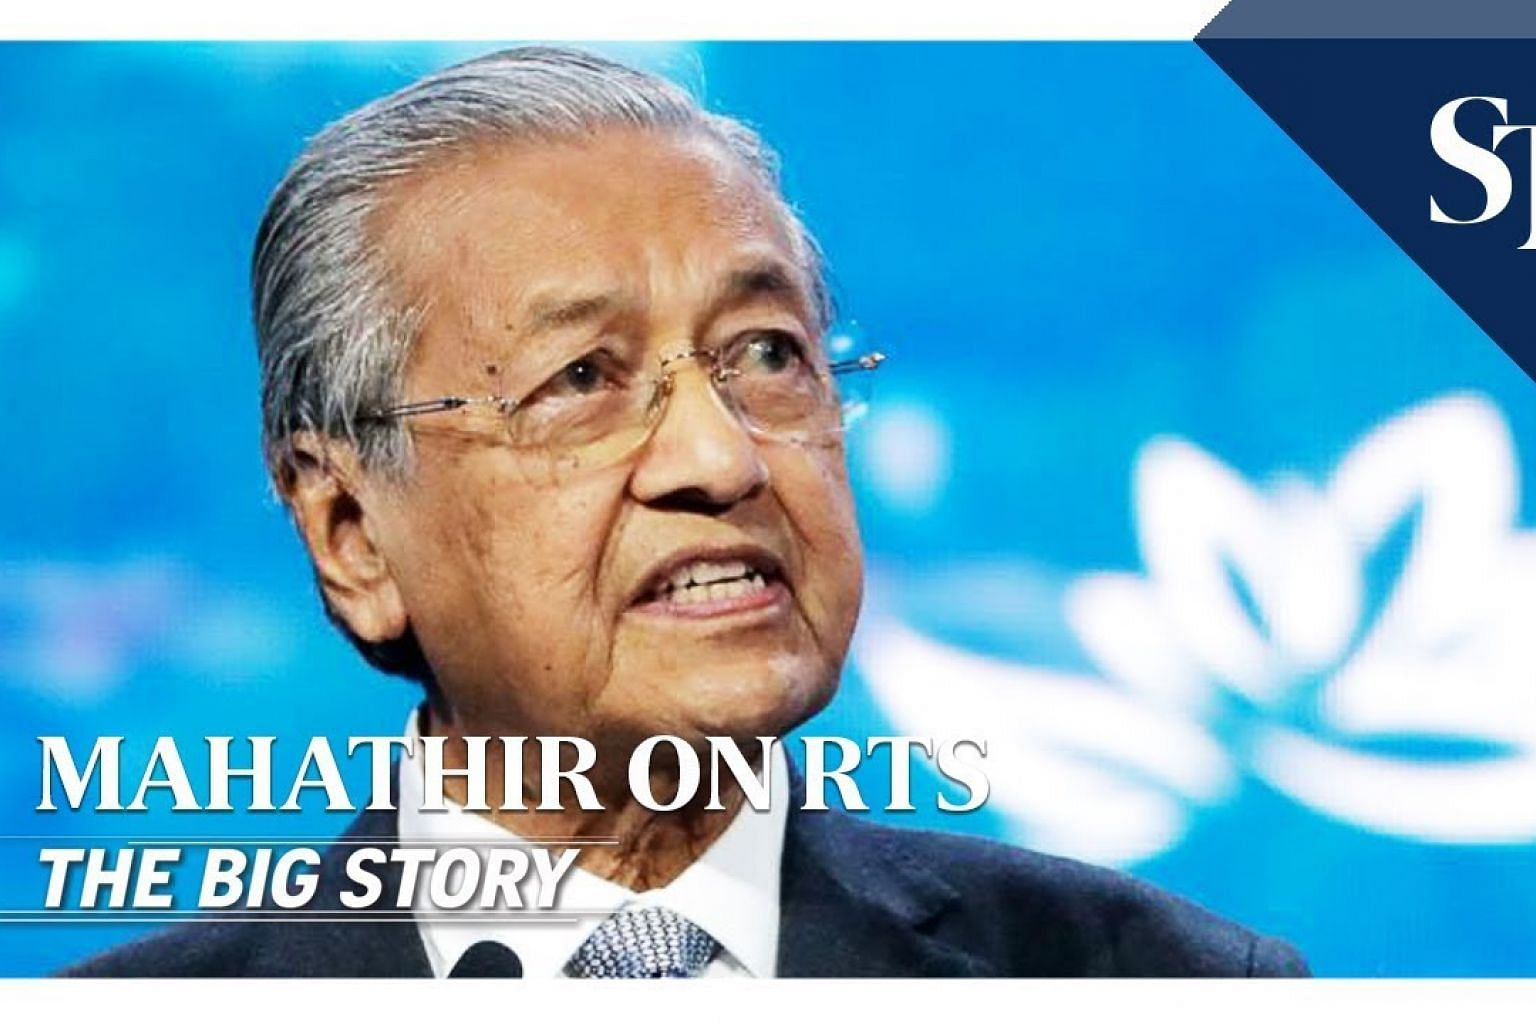 Mahathir on the JB-S'pore RTS rail project | THE BIG STORY | The Straits Times